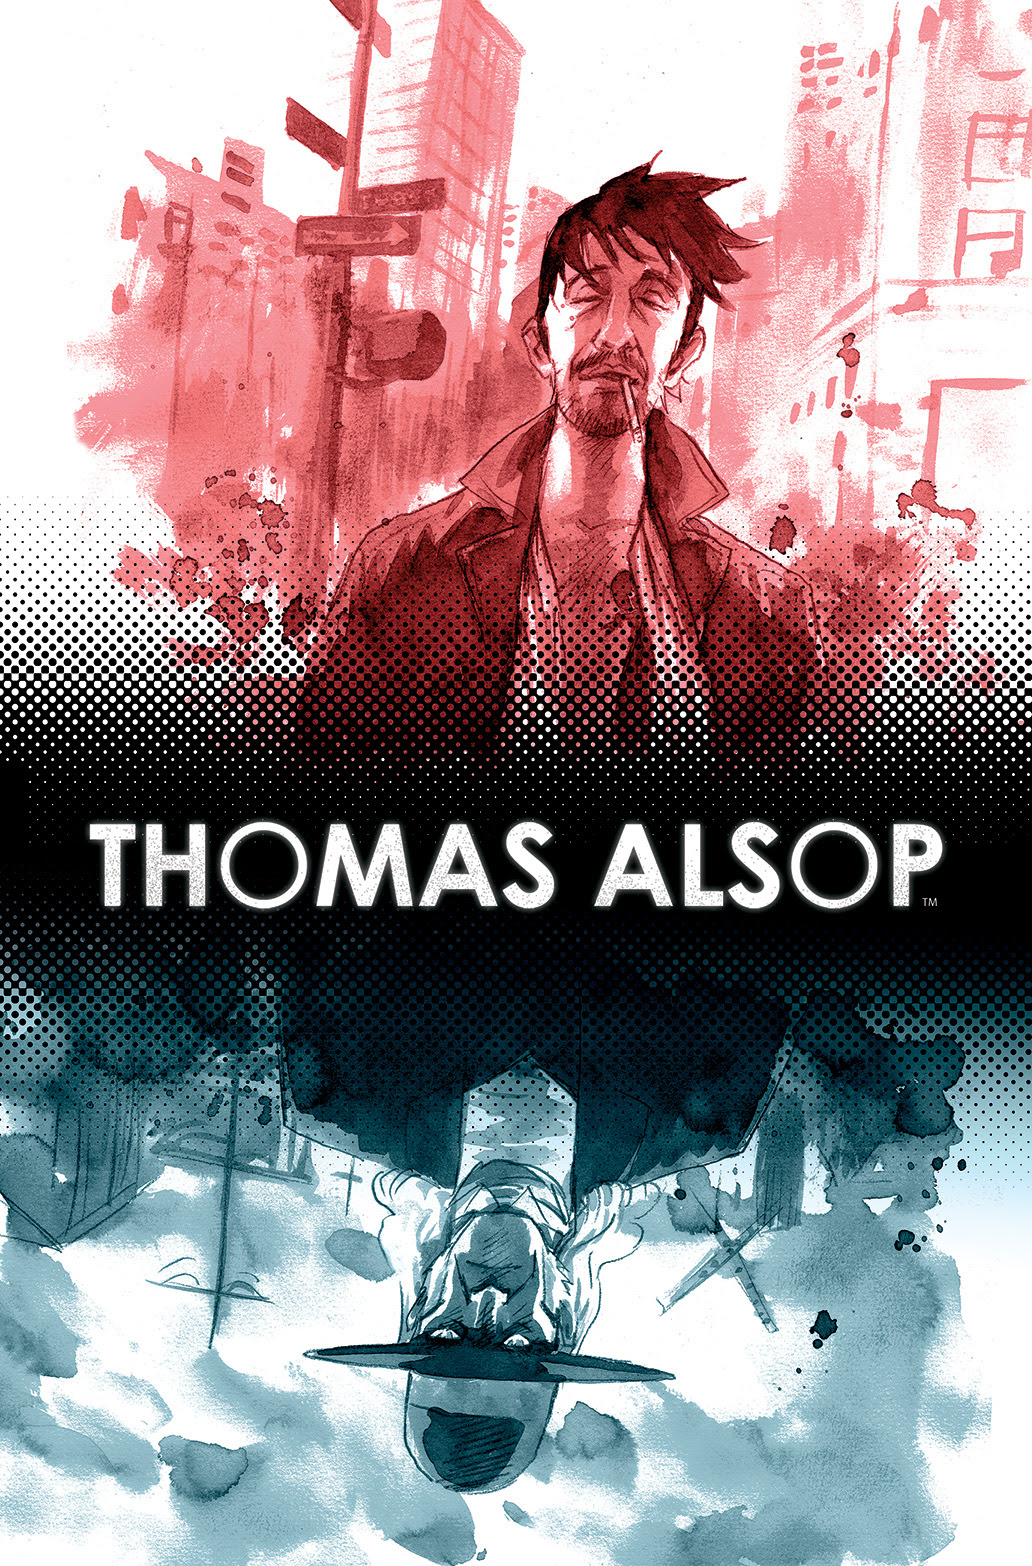 THOMAS ALSOP #1 Cover A by Palle Schmidt